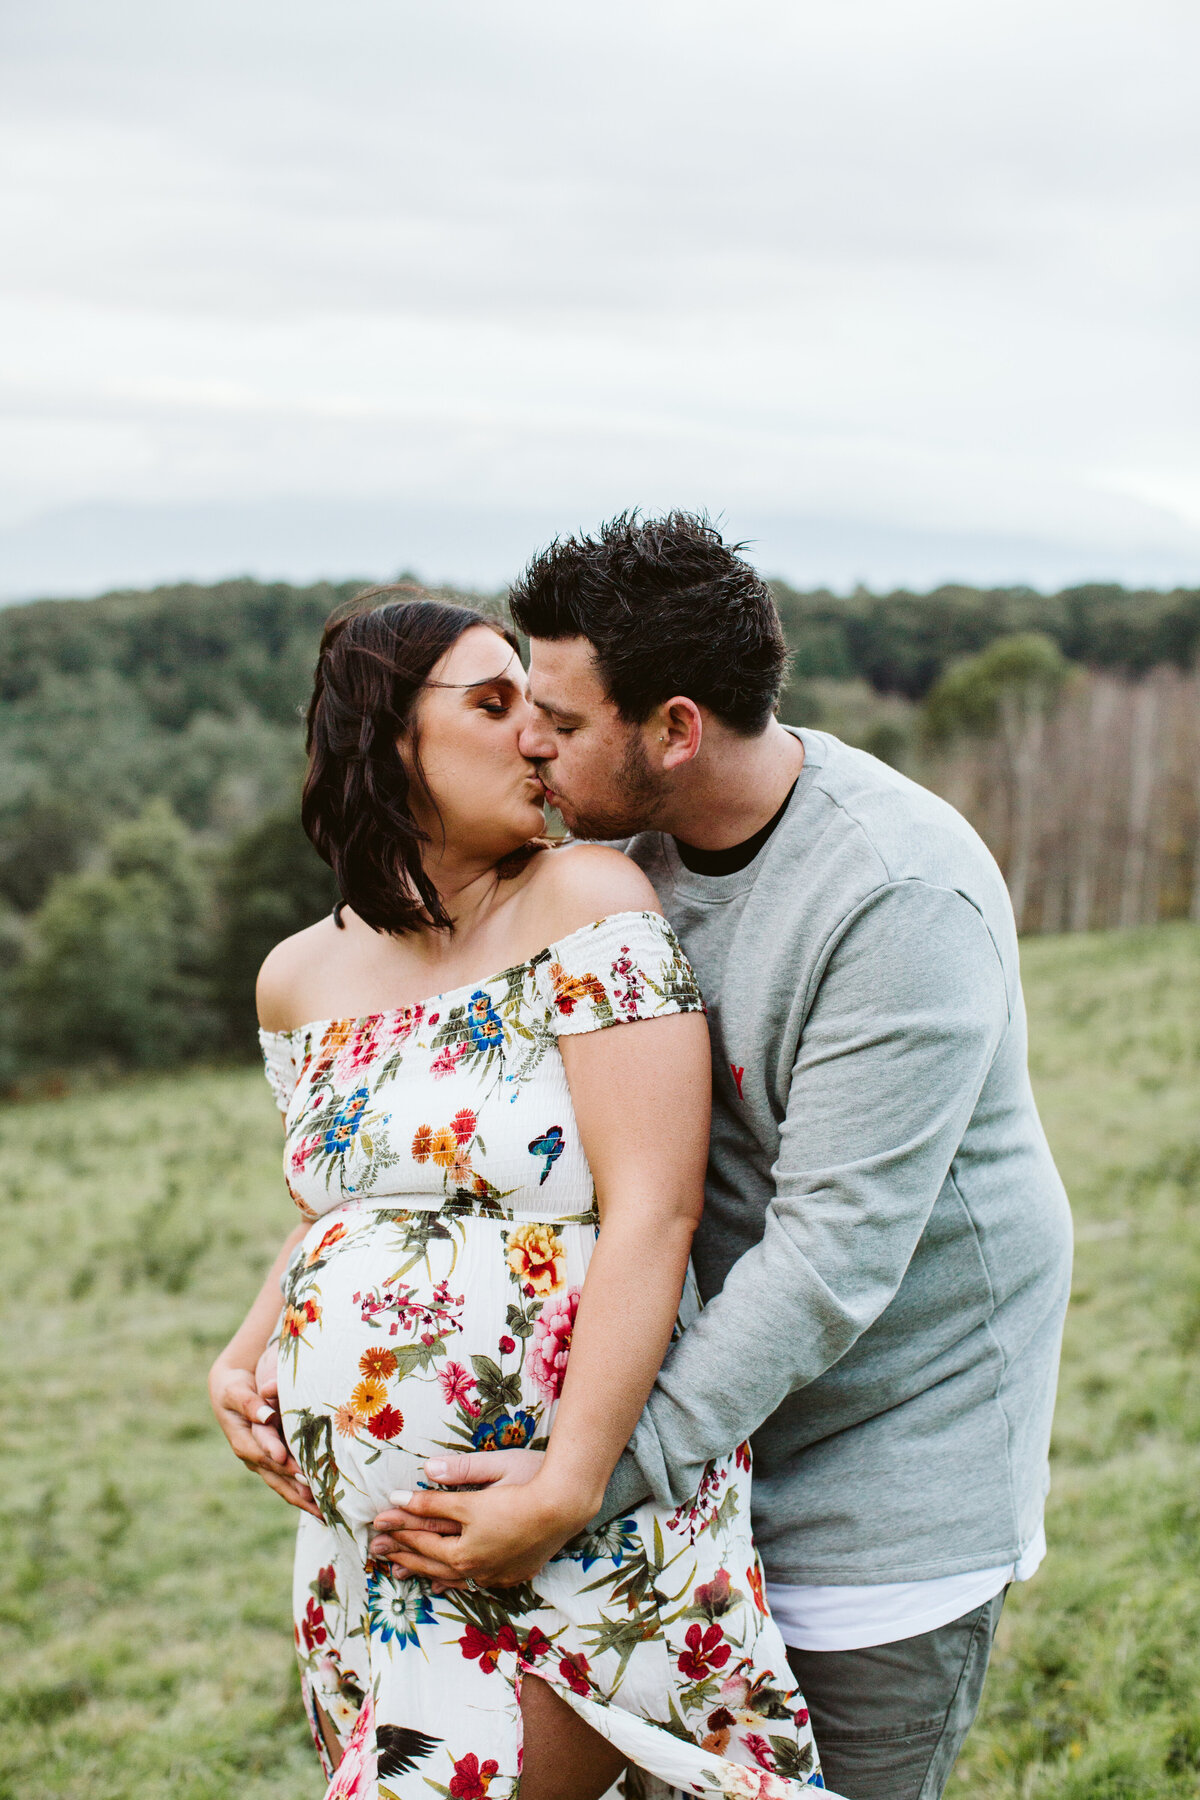 Belle_Martin_Photography_RJ_Hamer_Maternity_Session-3